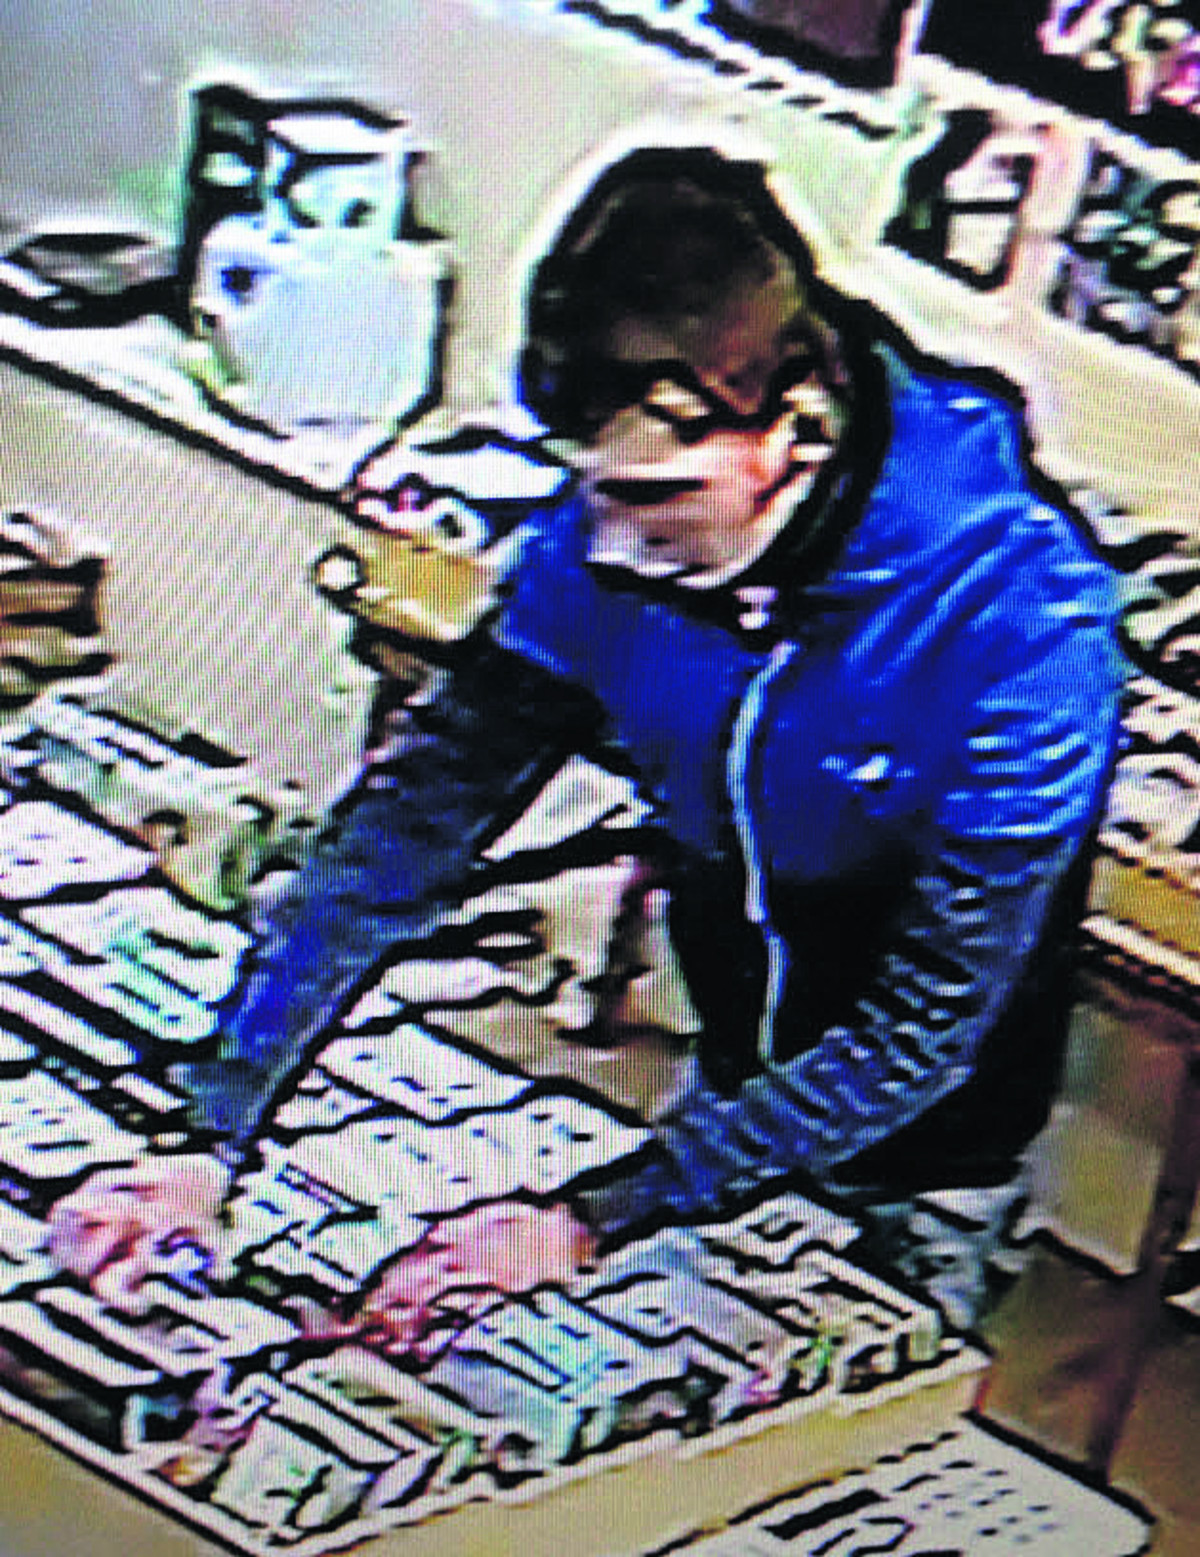 Police plea for witnesses after CDs and comic books stolen from Chippenham shop